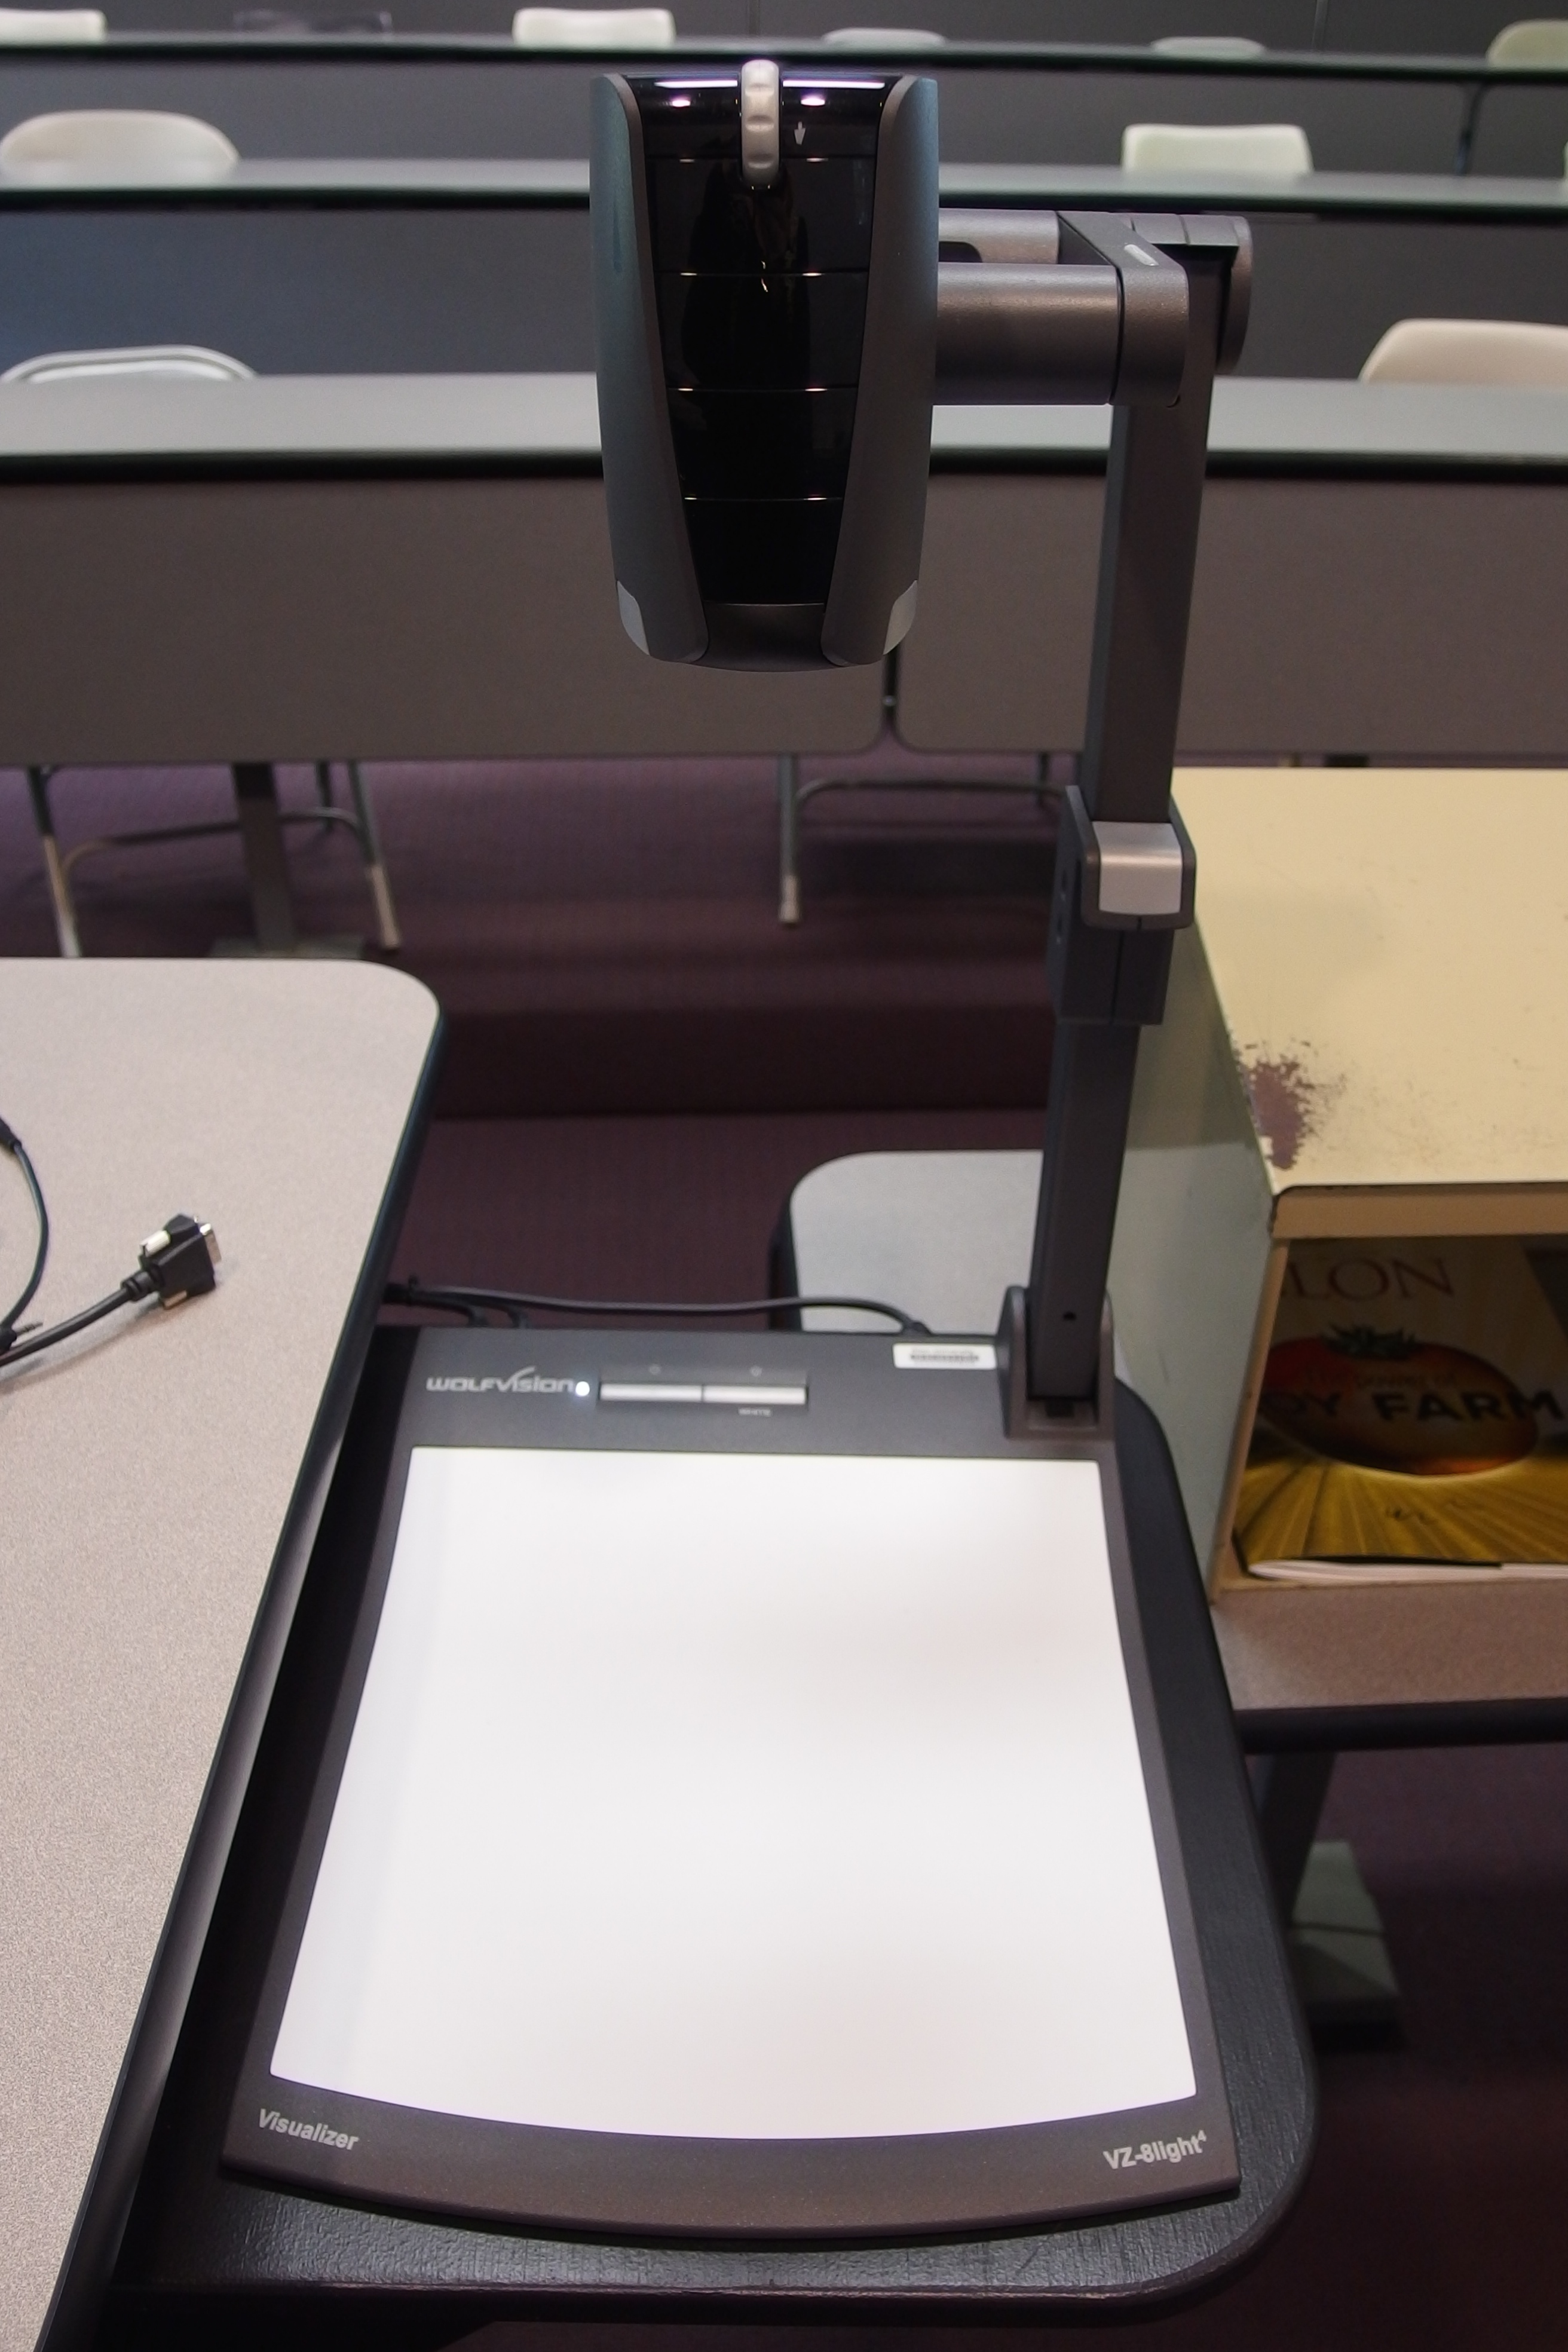 Photo of the WolfVision document camera available at the instructor's station